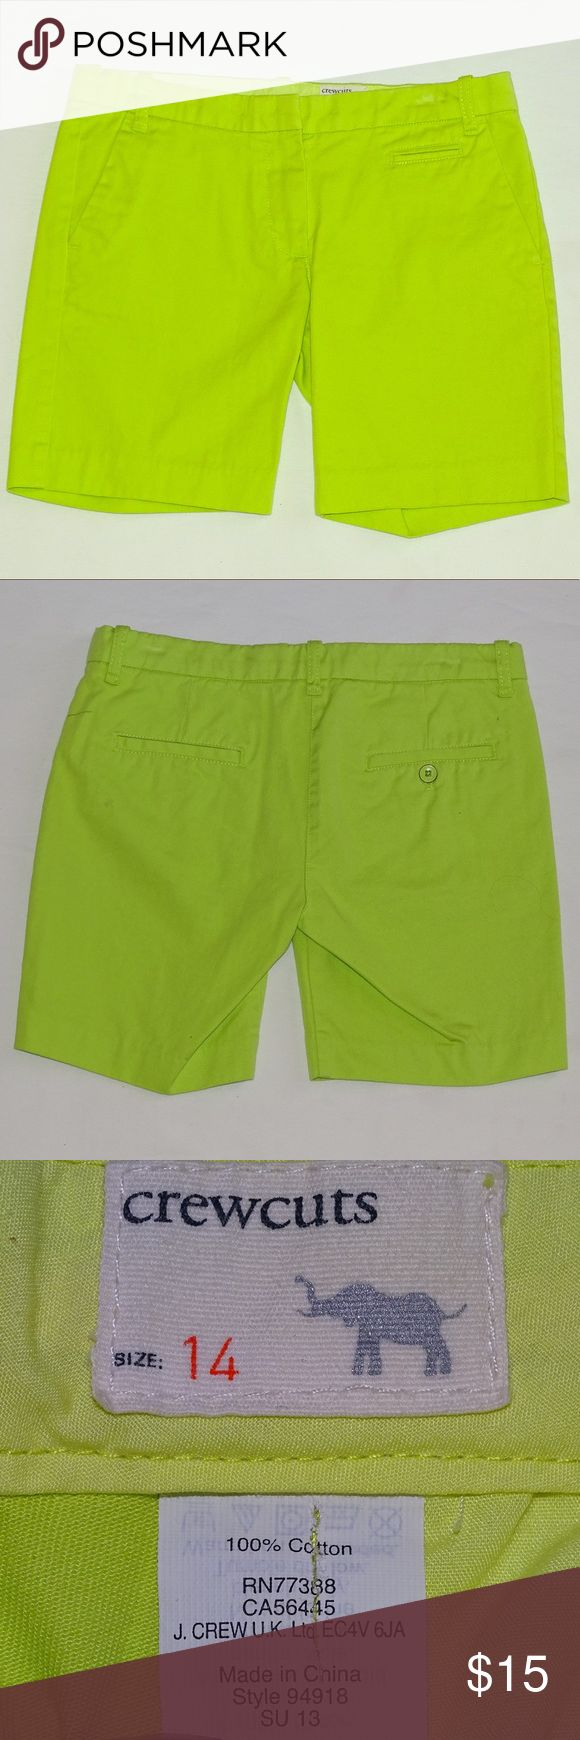 J Crew Girls Chino Bermuda Shorts Neon green with small slit pocket under waistline. Zipper and clasp closure in front. Flat pocket in the back. 100% cotton and are NWOT. J. Crew Bottoms Shorts